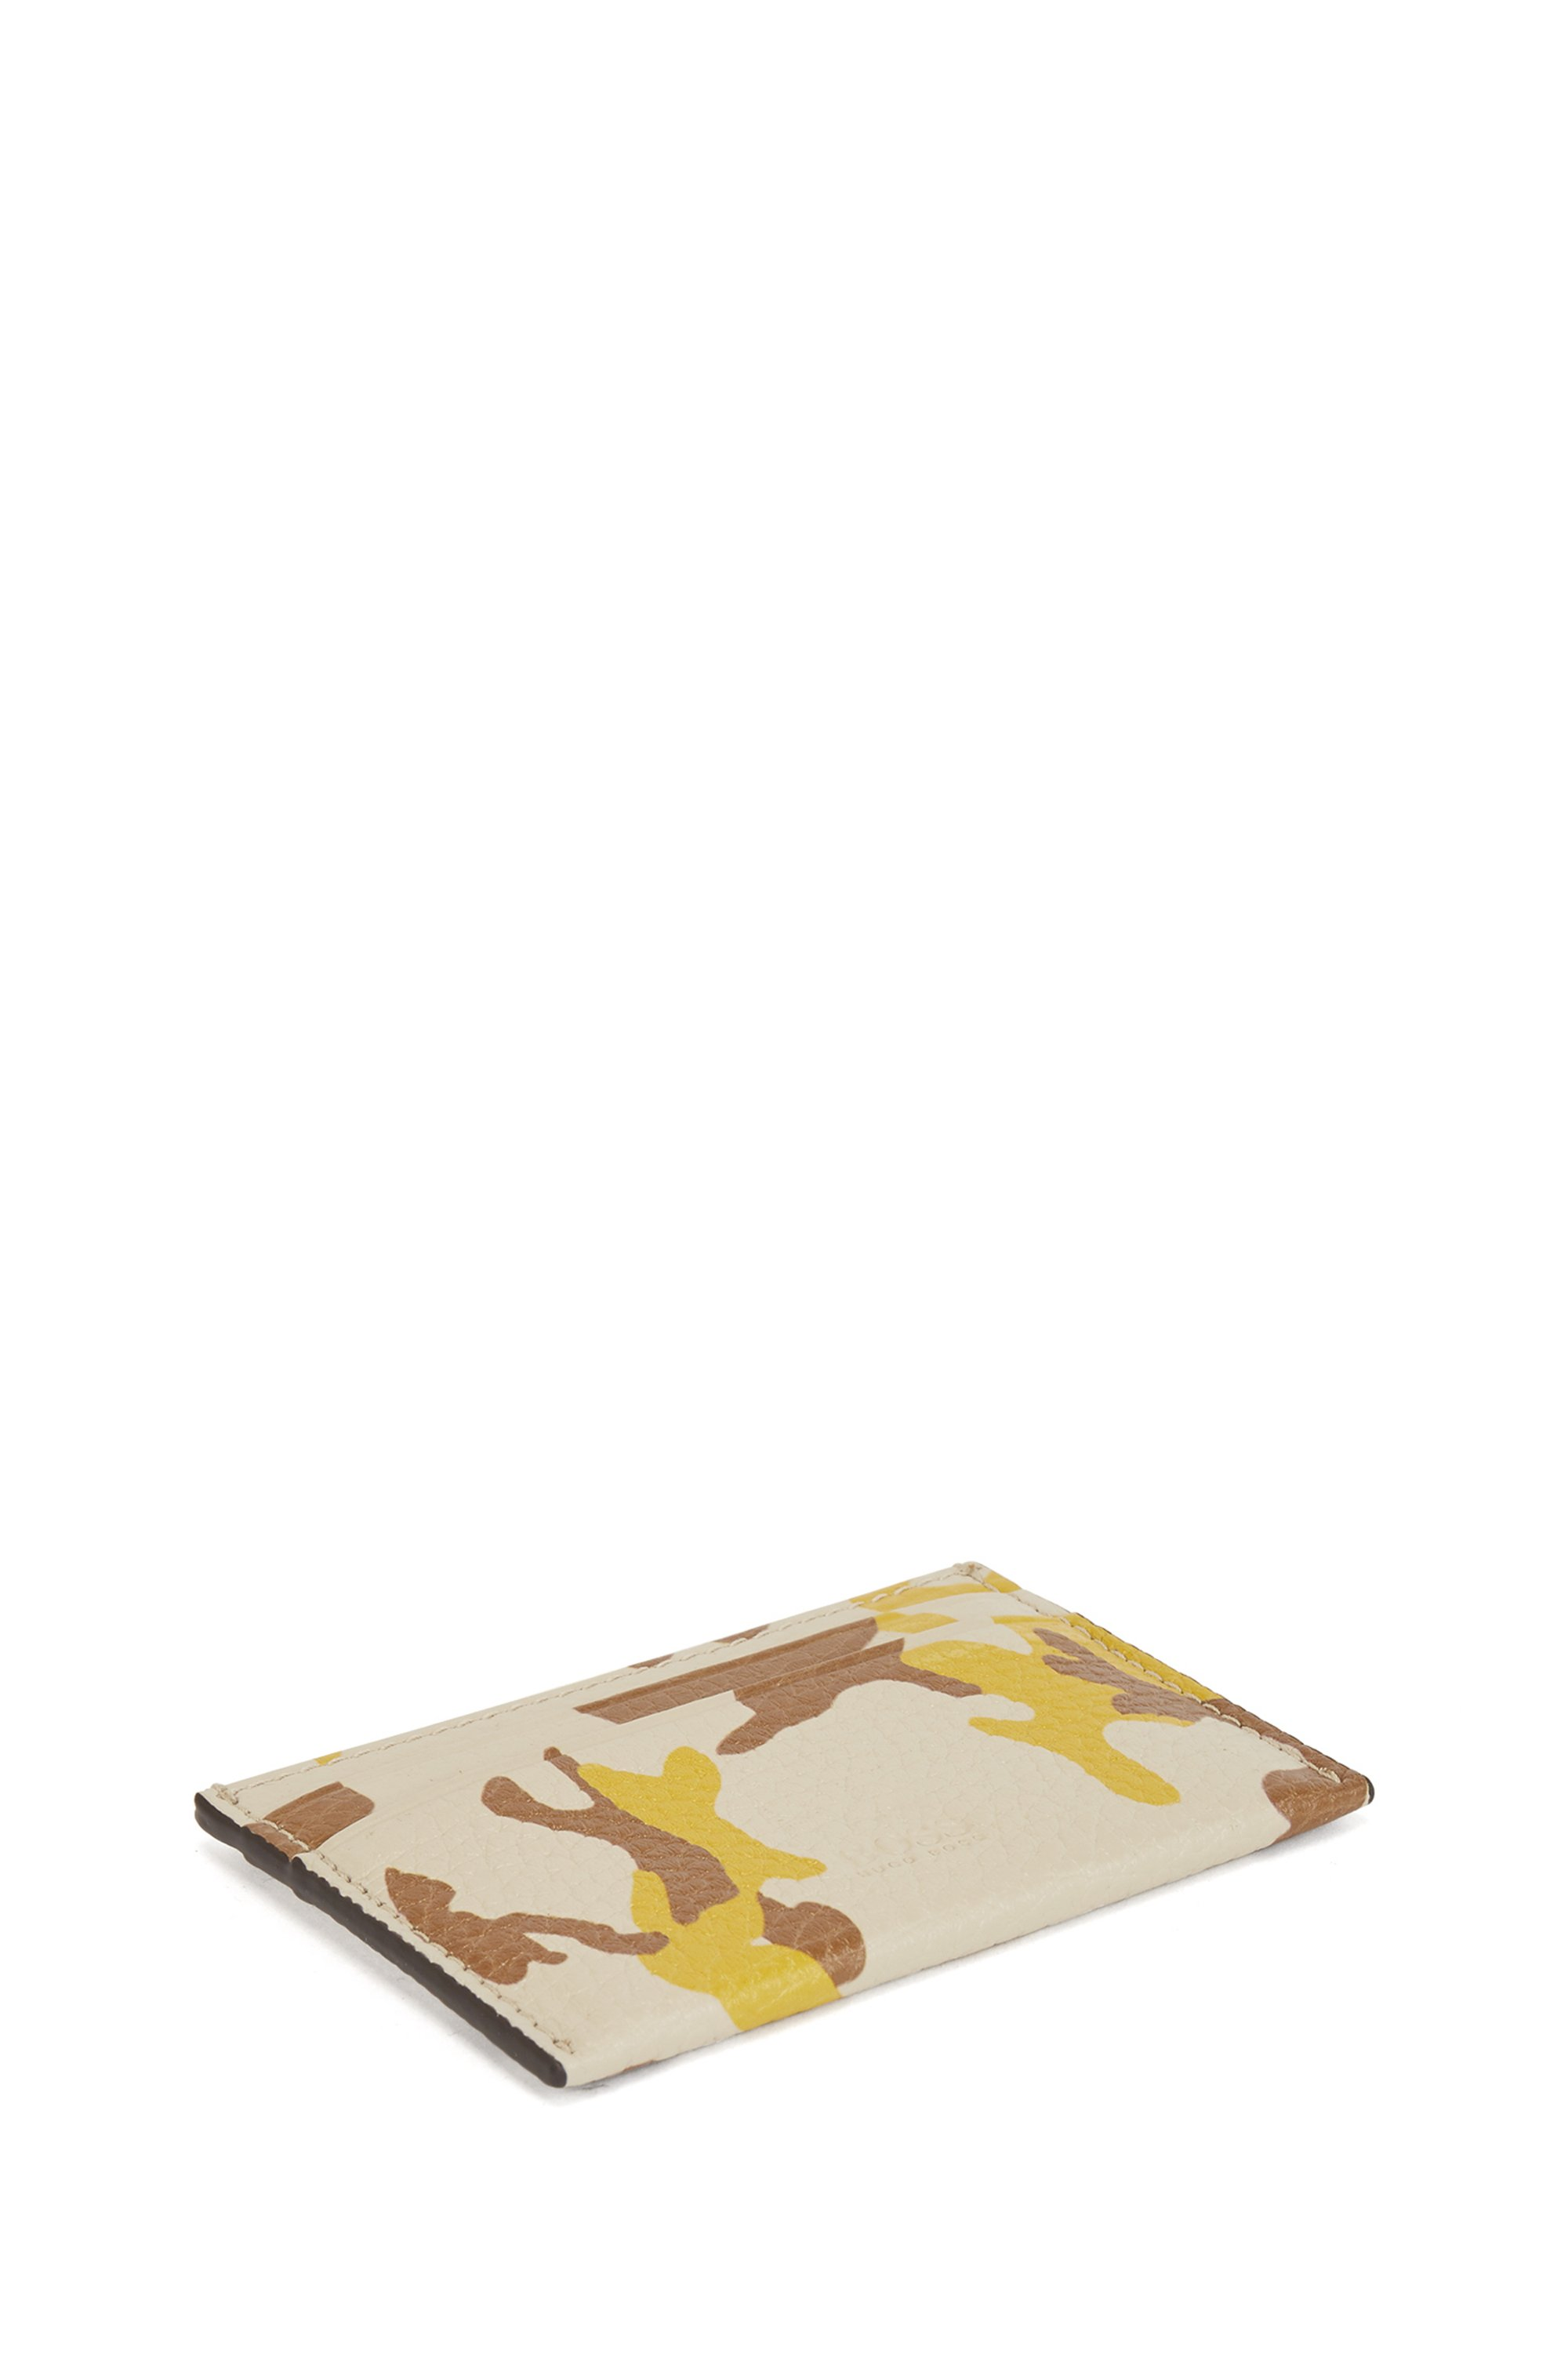 Camouflage-print card holder in Italian leather